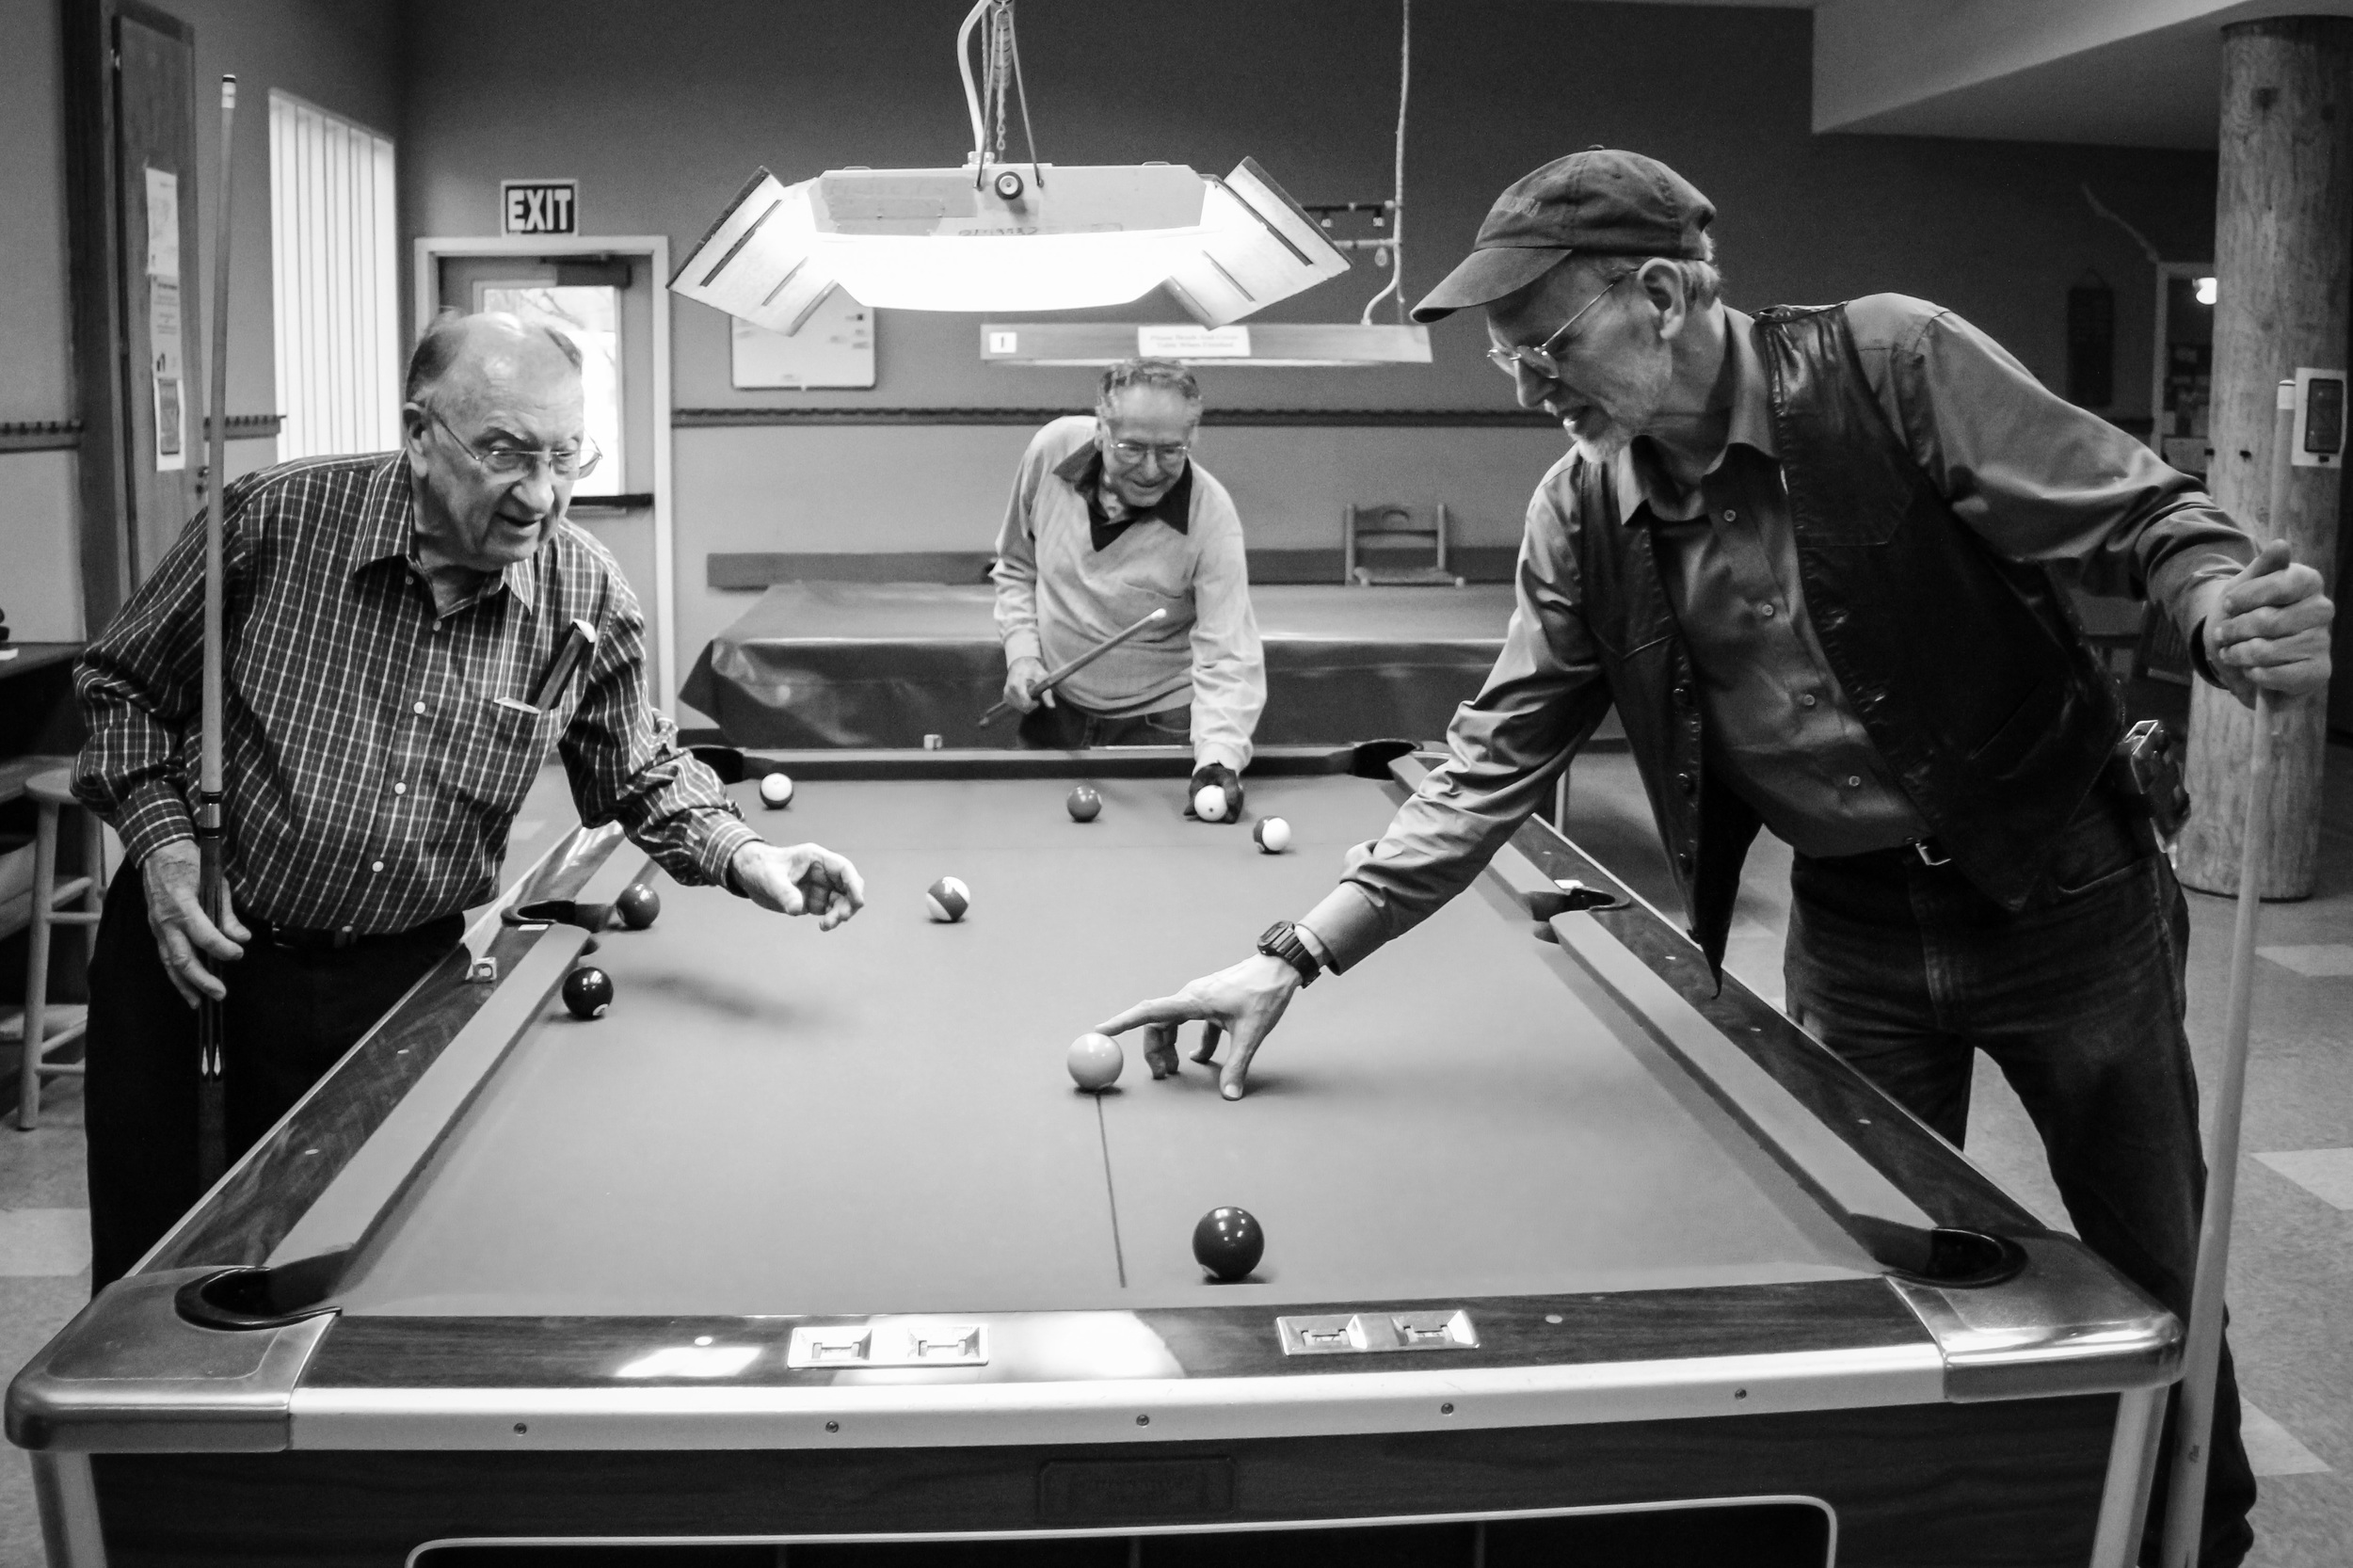 """Bob Souders, Ira Webber and Dr. Robin Rieck arrange the balls on the table during a game of pool at the senior center. Each one regularly plays with other members for a few days each week. Rieck, a former professor of business at Western Washington University, also occasionally teaches classes at the center. His most recent class was """"The Magic on How Societies Create and Lose Wealth."""""""